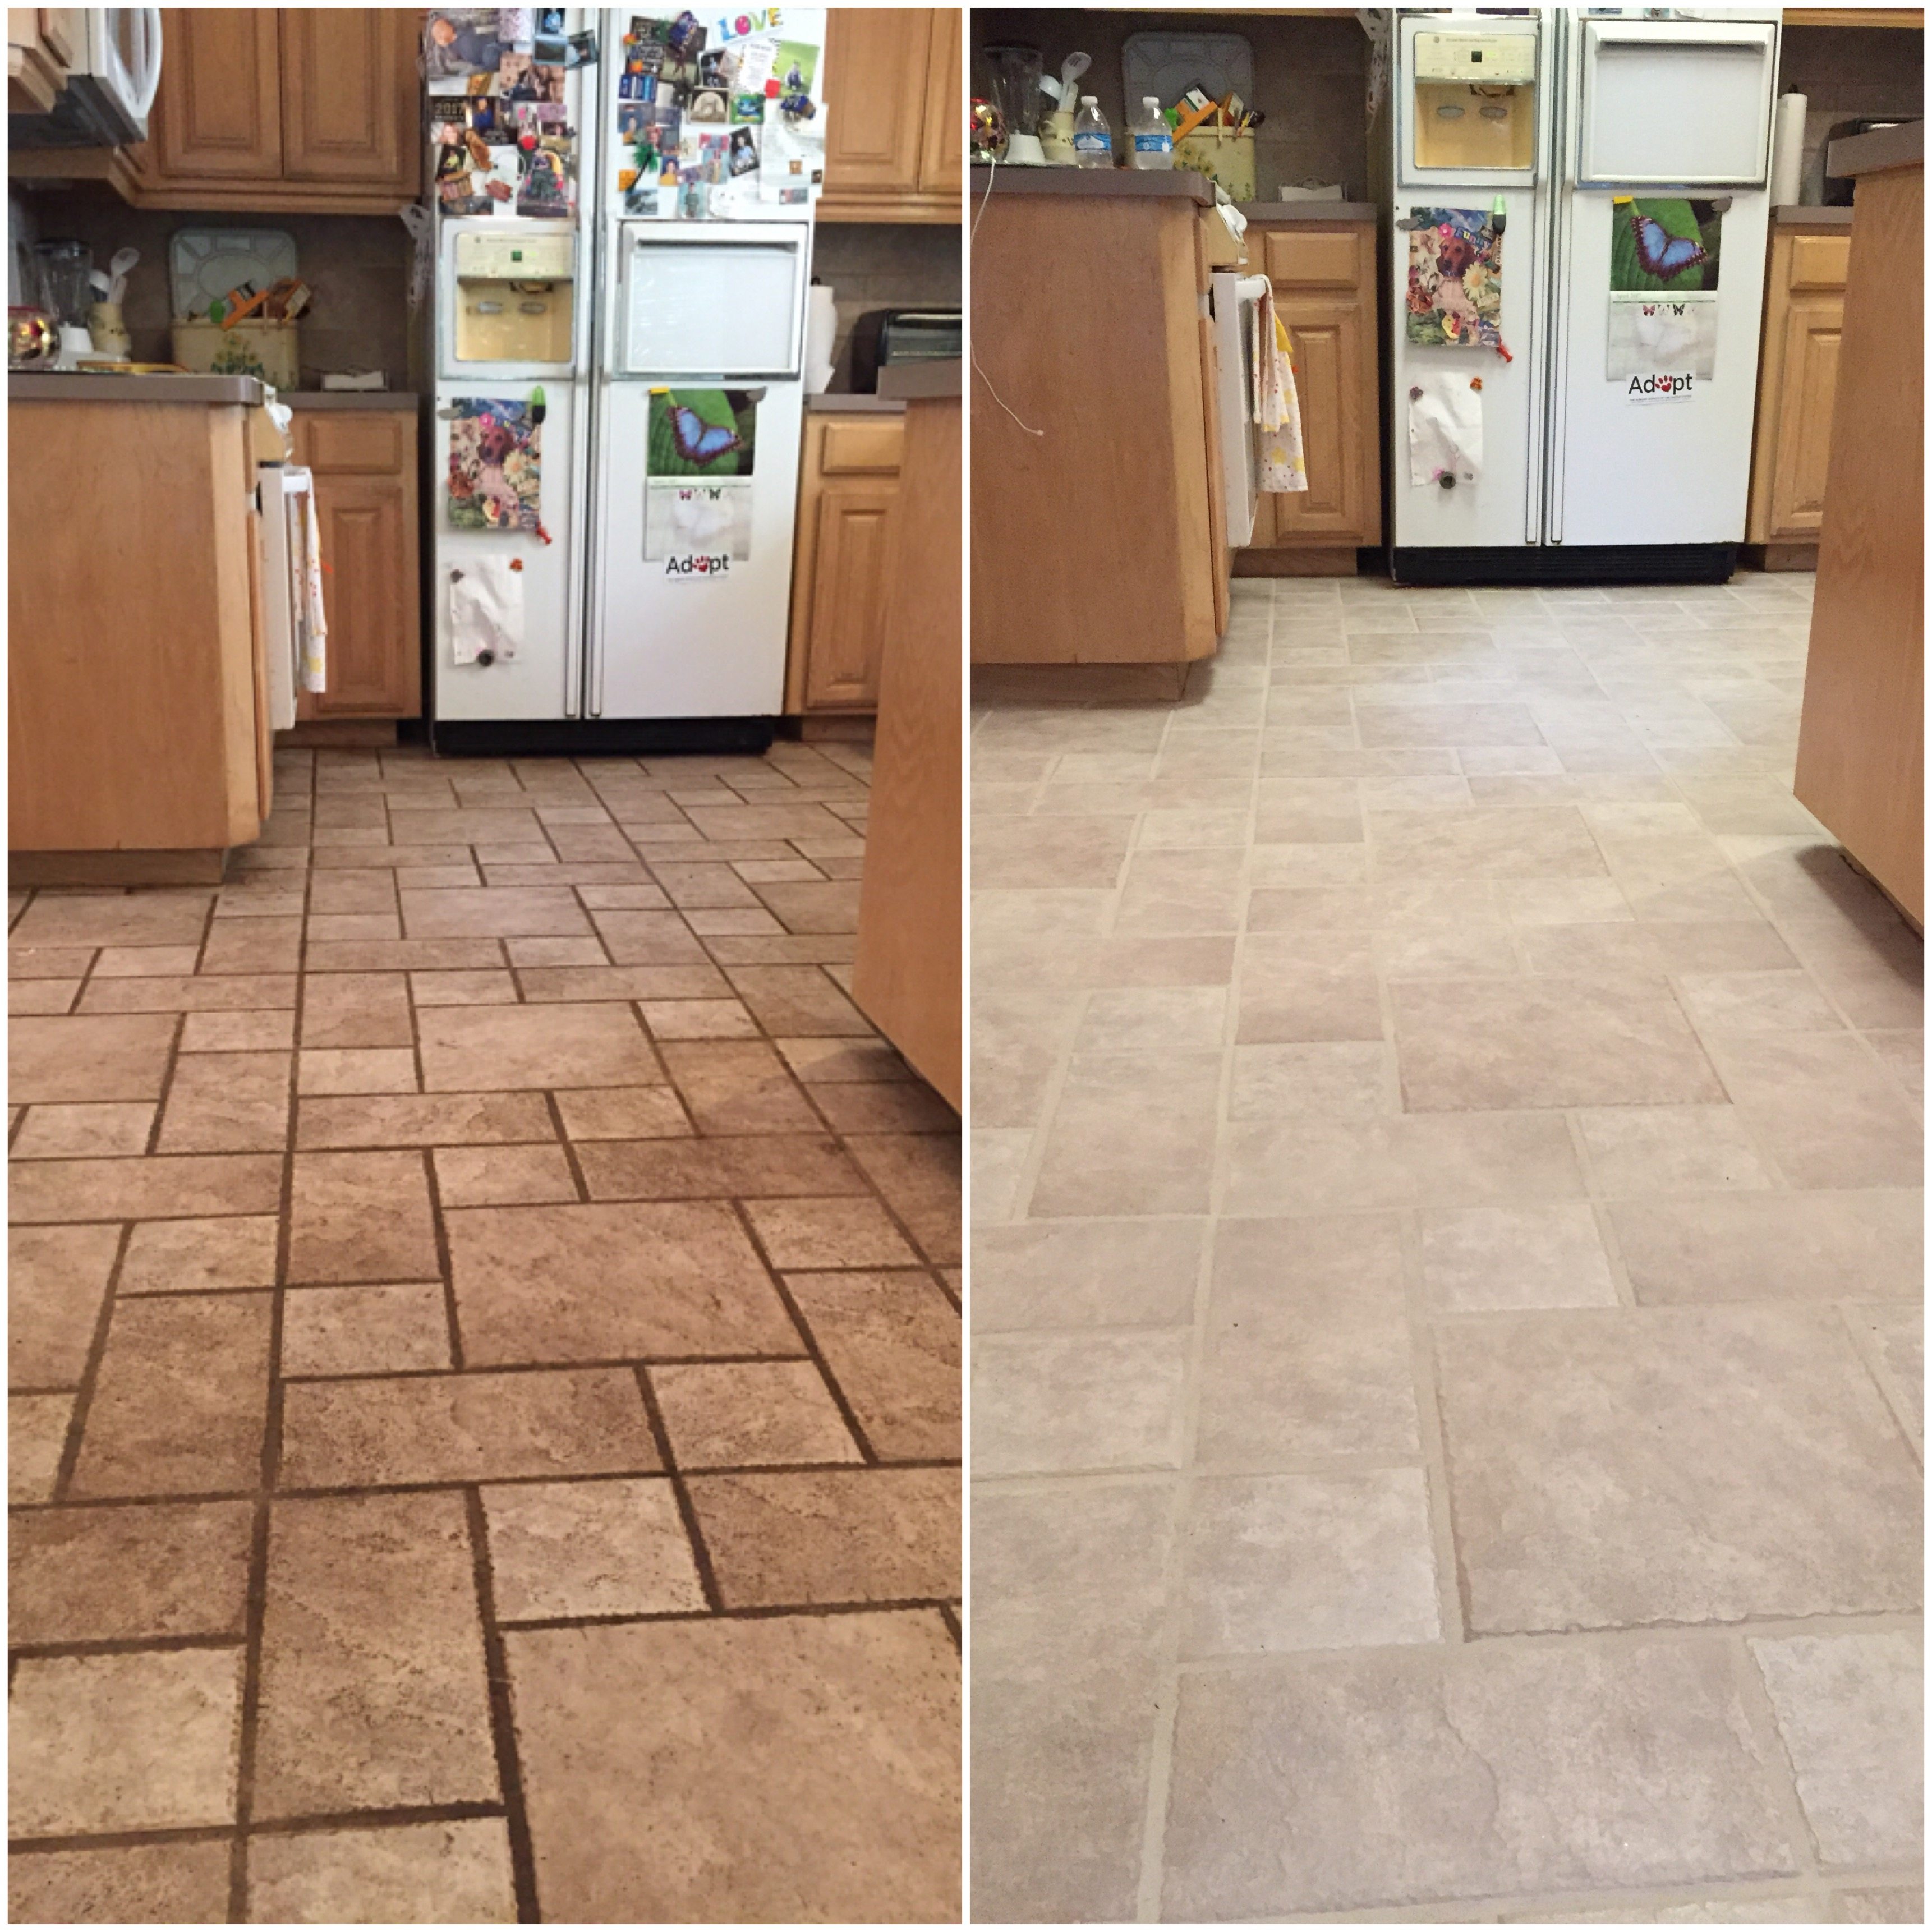 Tile Grout Cleaning, Color Sealing, Grout Repair and Shower Restorations, Frisco, Dallas, TX.